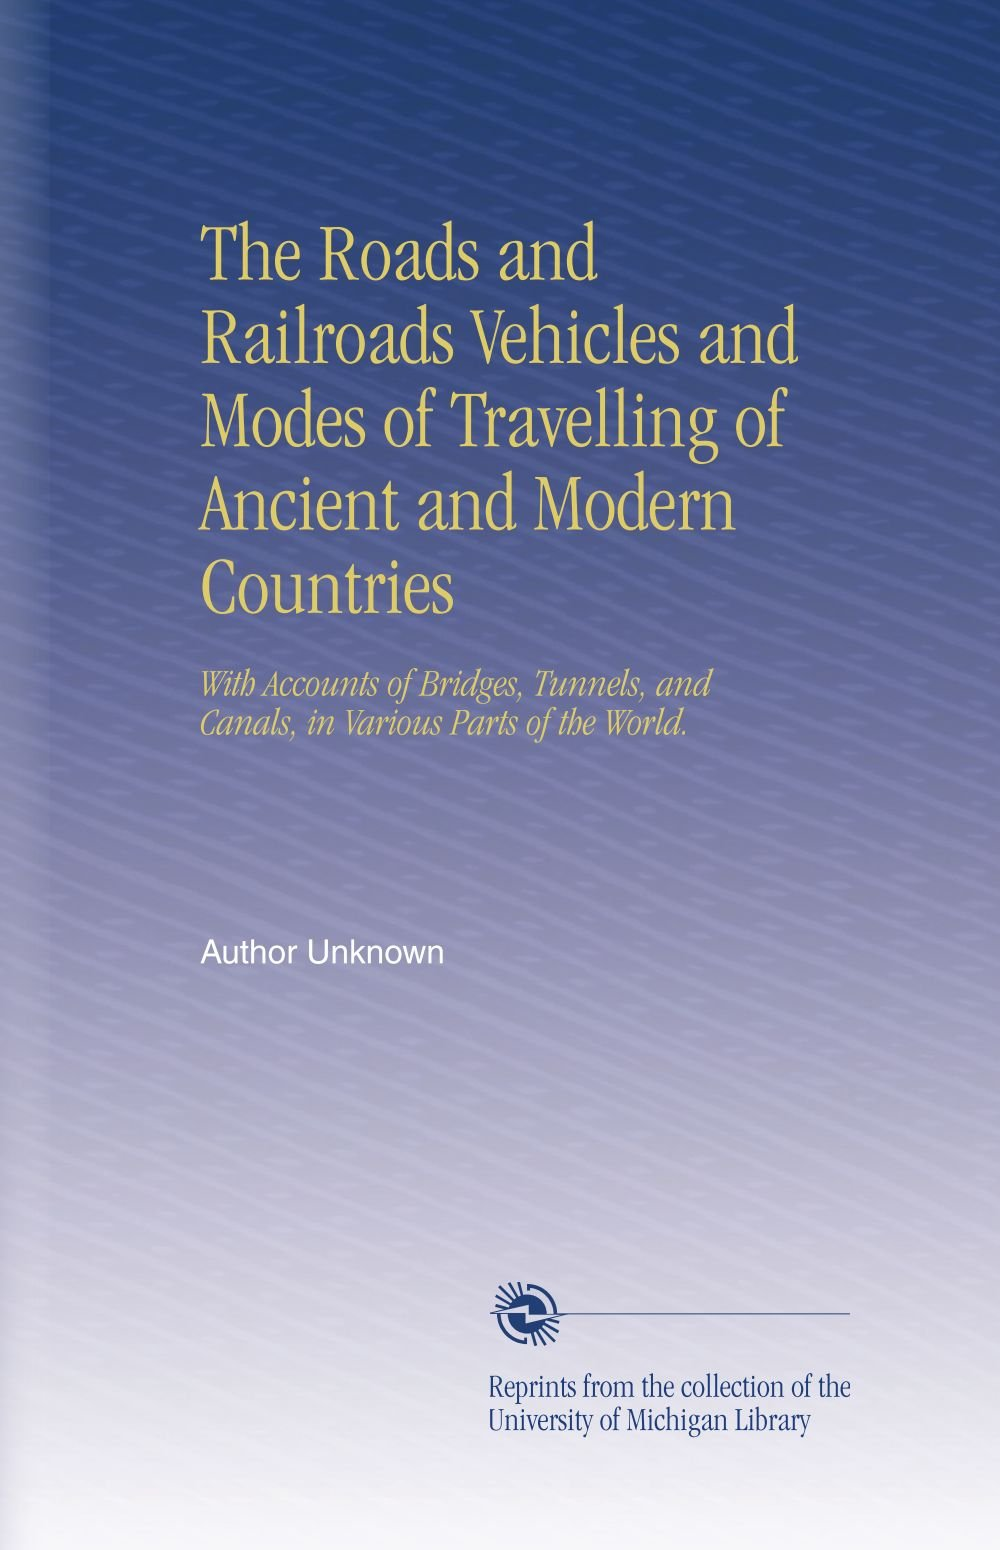 Download The Roads and Railroads Vehicles and Modes of Travelling of Ancient and Modern Countries: With Accounts of Bridges, Tunnels, and Canals, in Various Parts of the World. pdf